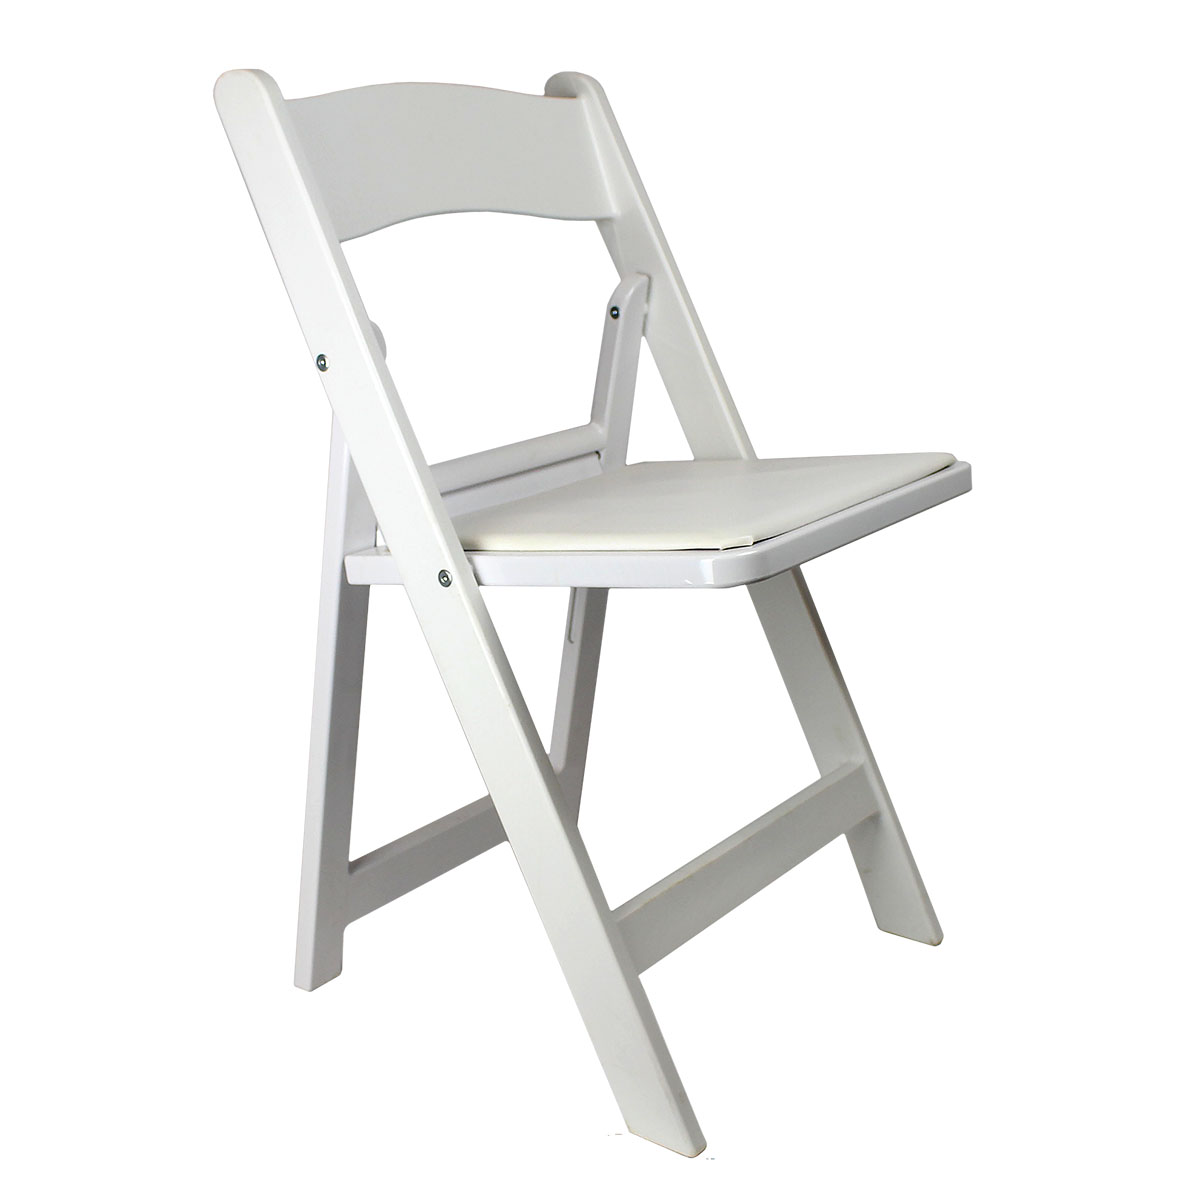 Chair White Garden With Padded Seat